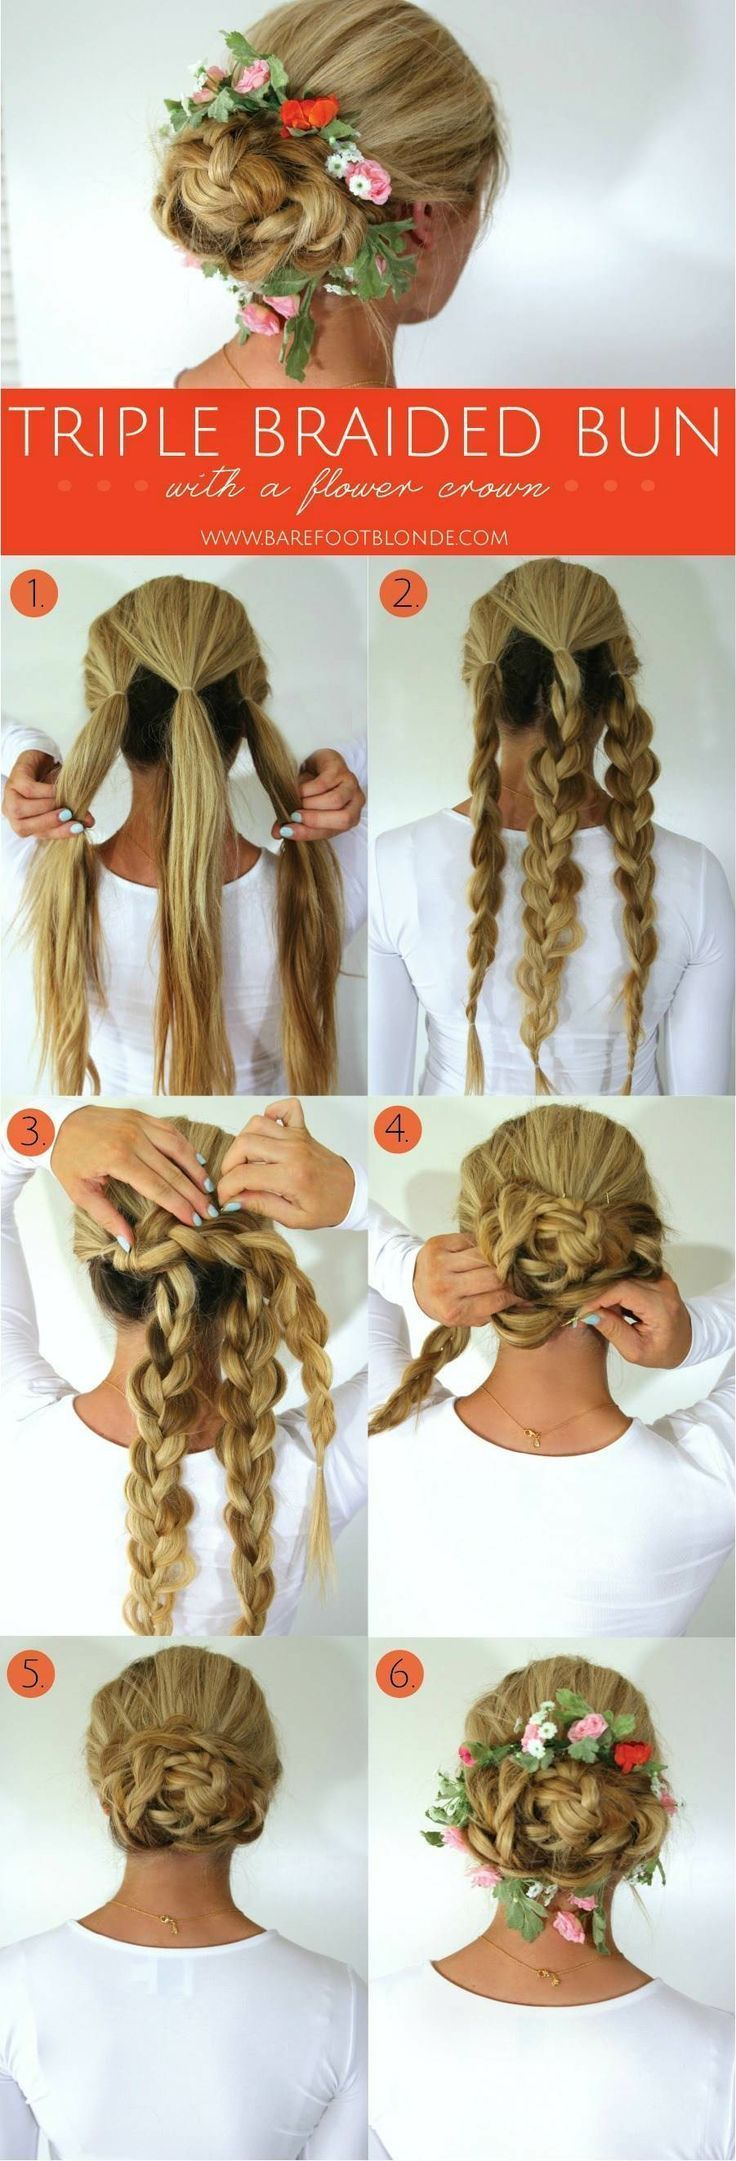 Hairstyles To Rock For Prom